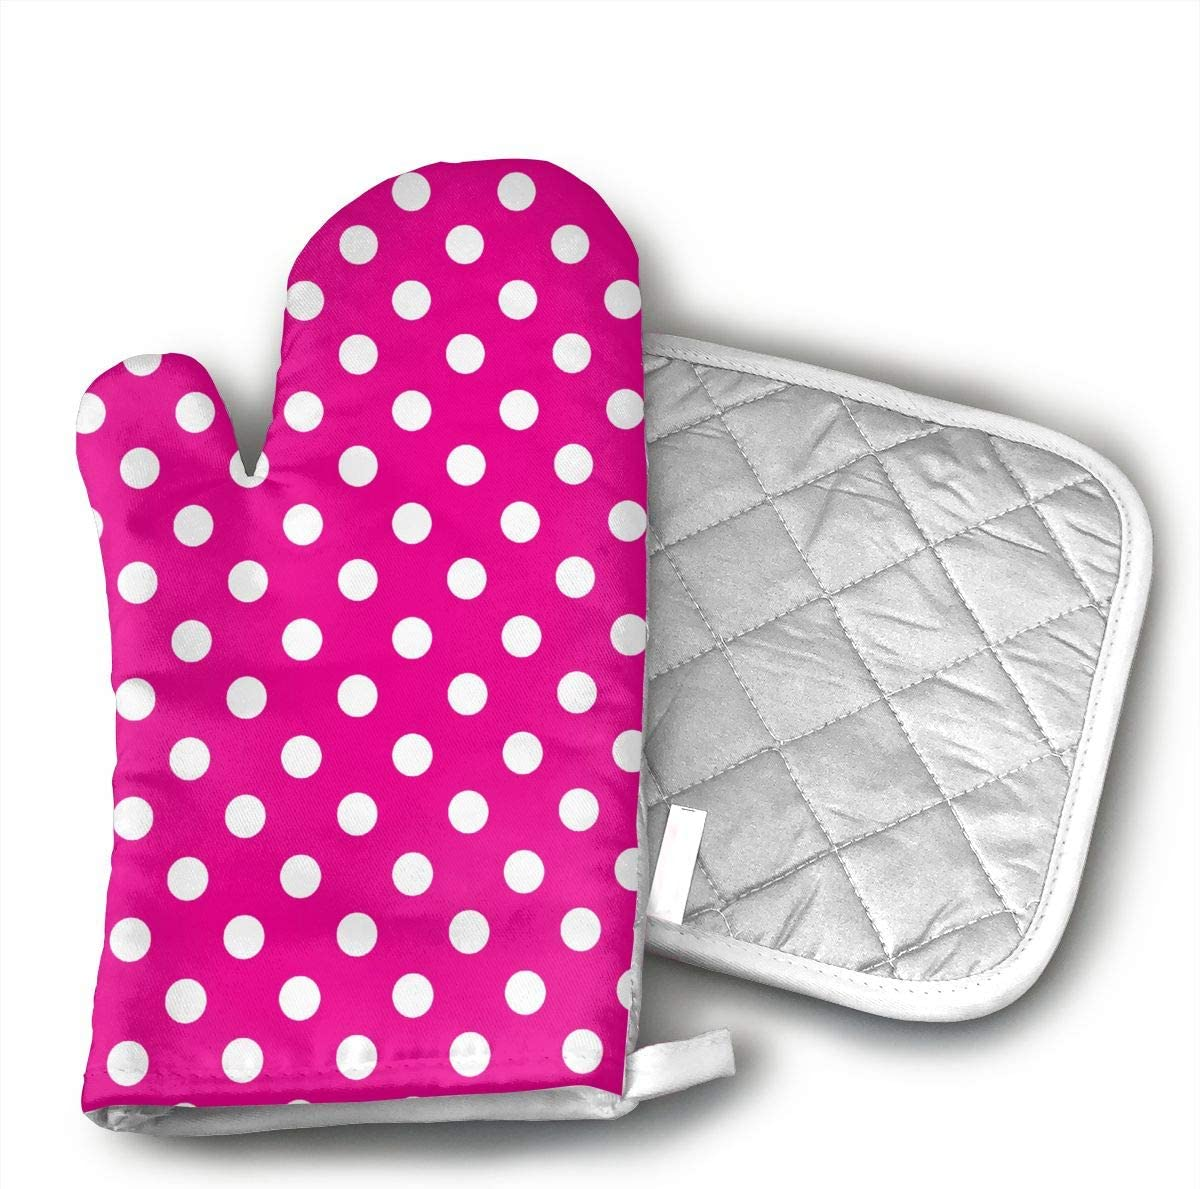 Pink White Polka Dot Oven Mitts and Pot Holders Set with Polyester Cotton Non-Slip Grip, Heat Resistant, Oven Gloves for BBQ Cooking Baking, Grilling